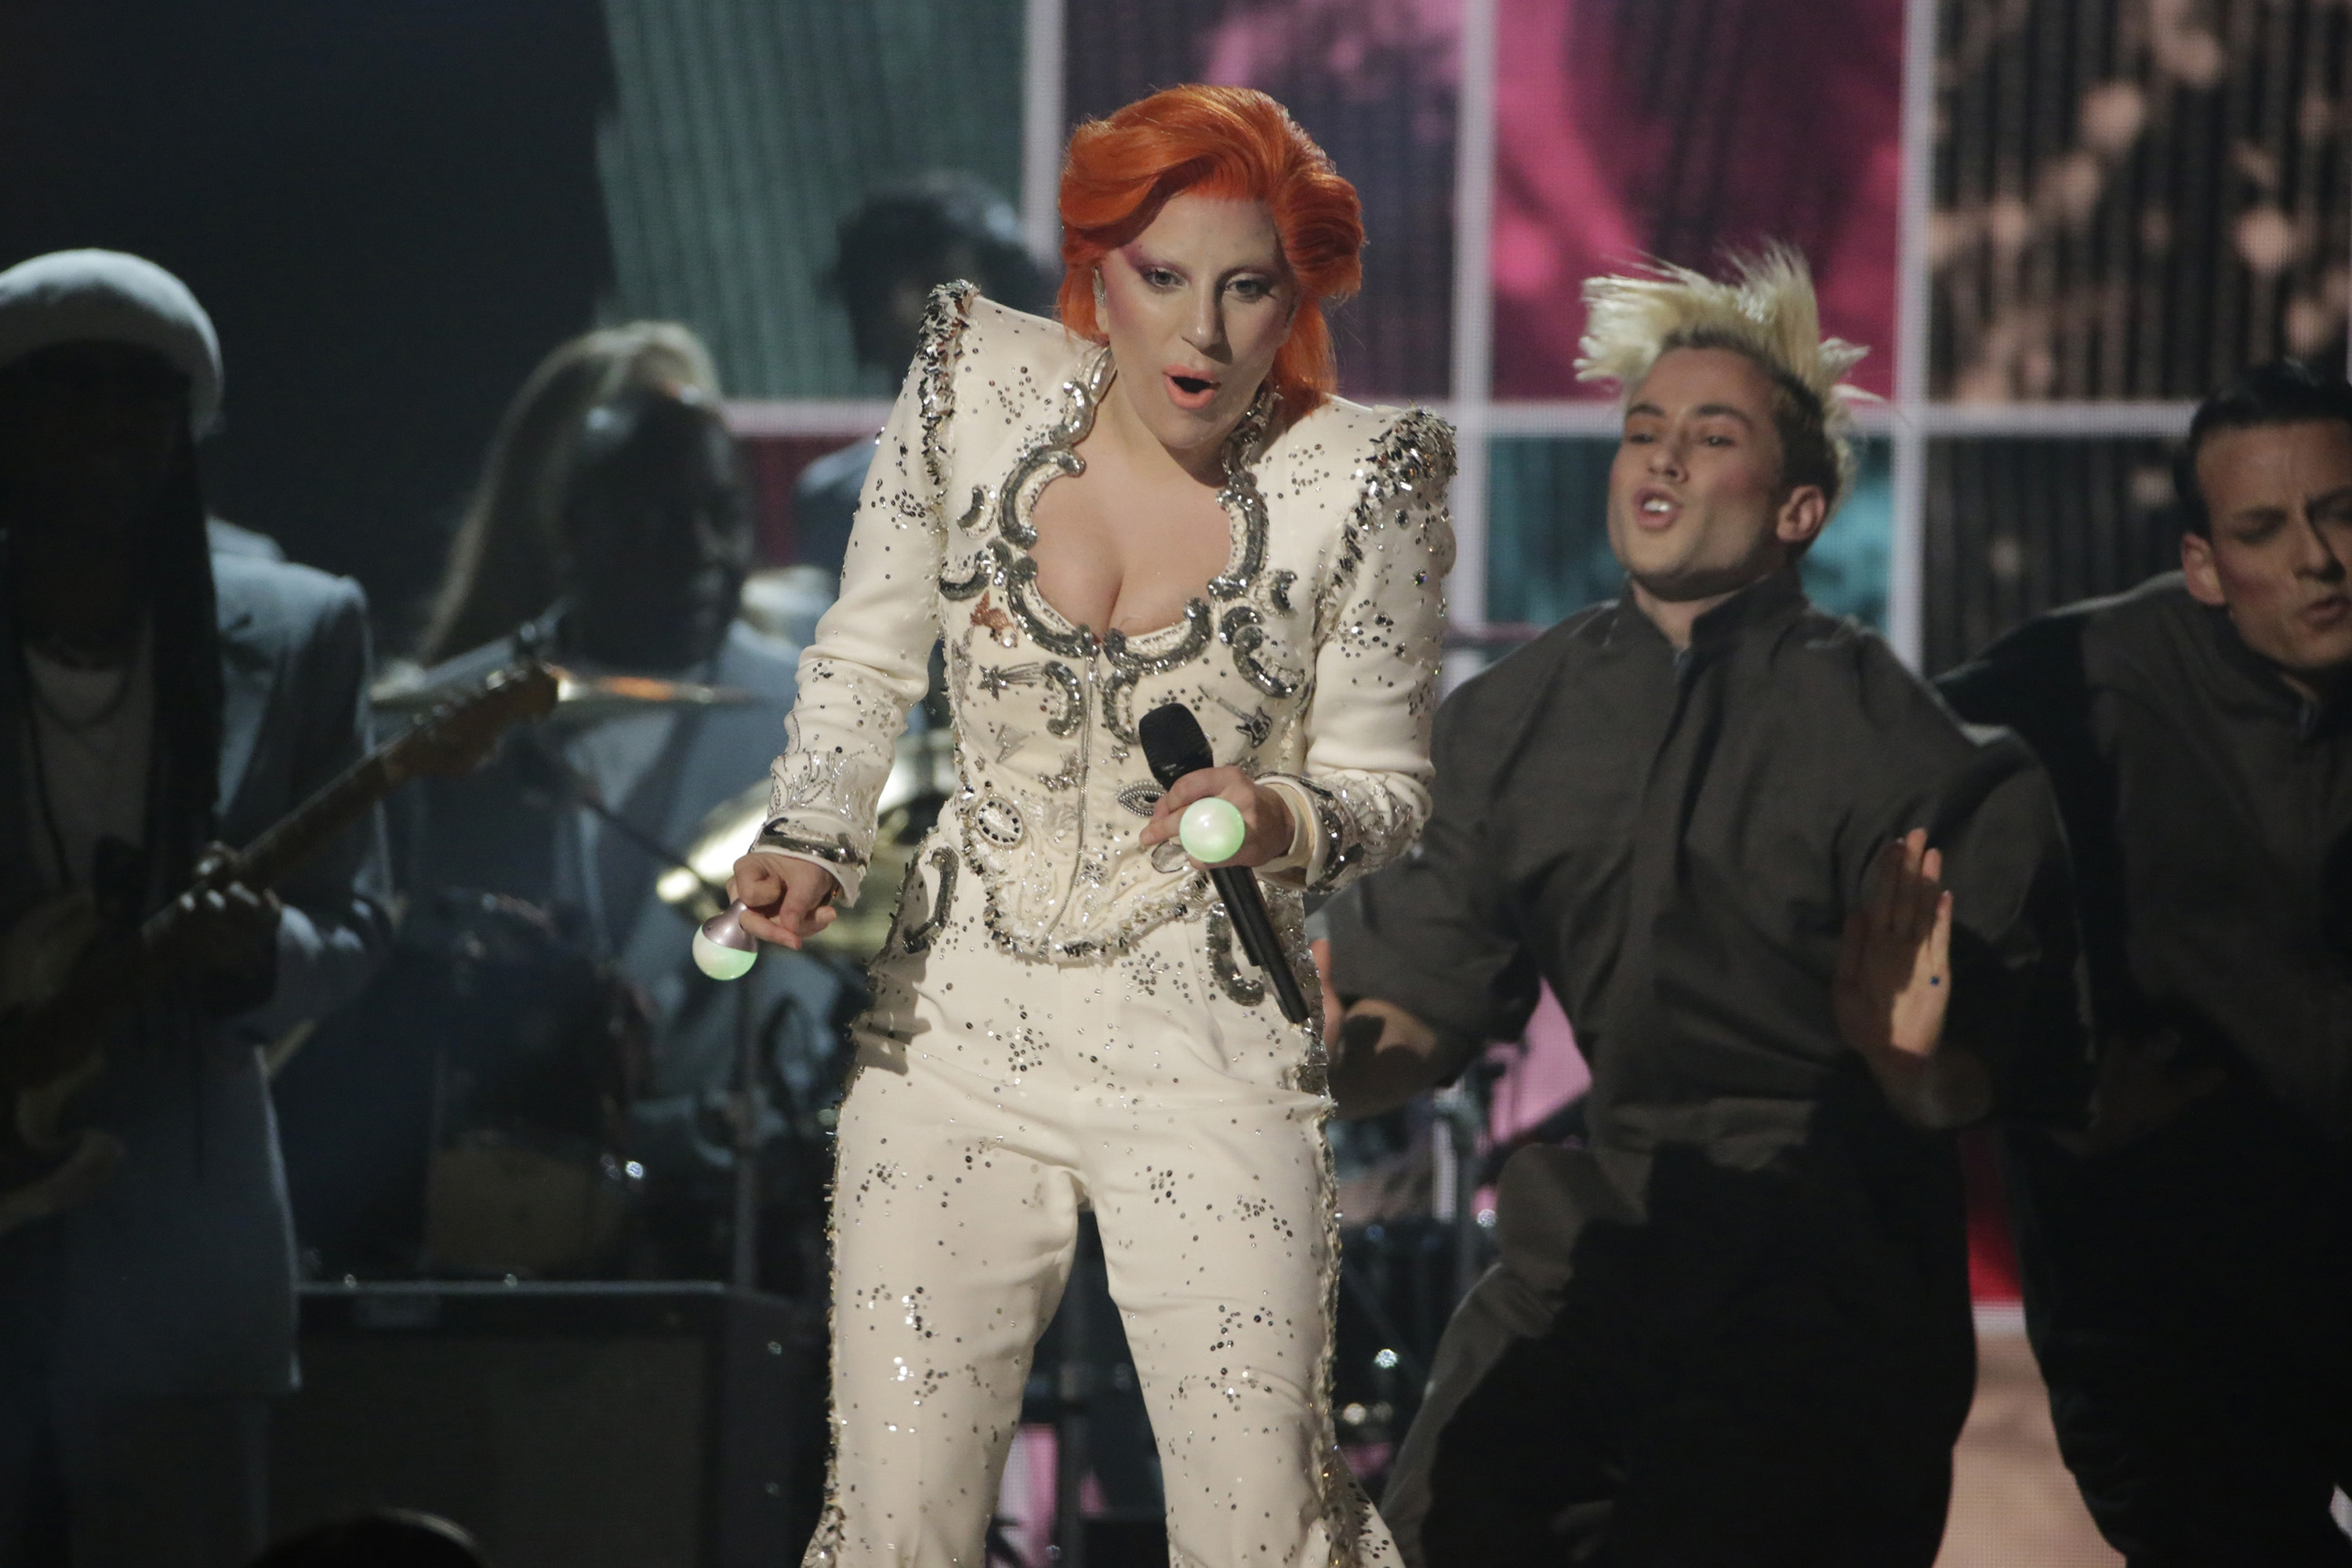 Lady Gaga performs her David Bowie tribute at the 58th Annual Grammy Awards on Monday, Feb. 15, 2016, at the Staples Center in Los Angeles. (Robert Gauthier/Los Angeles Times/TNS)